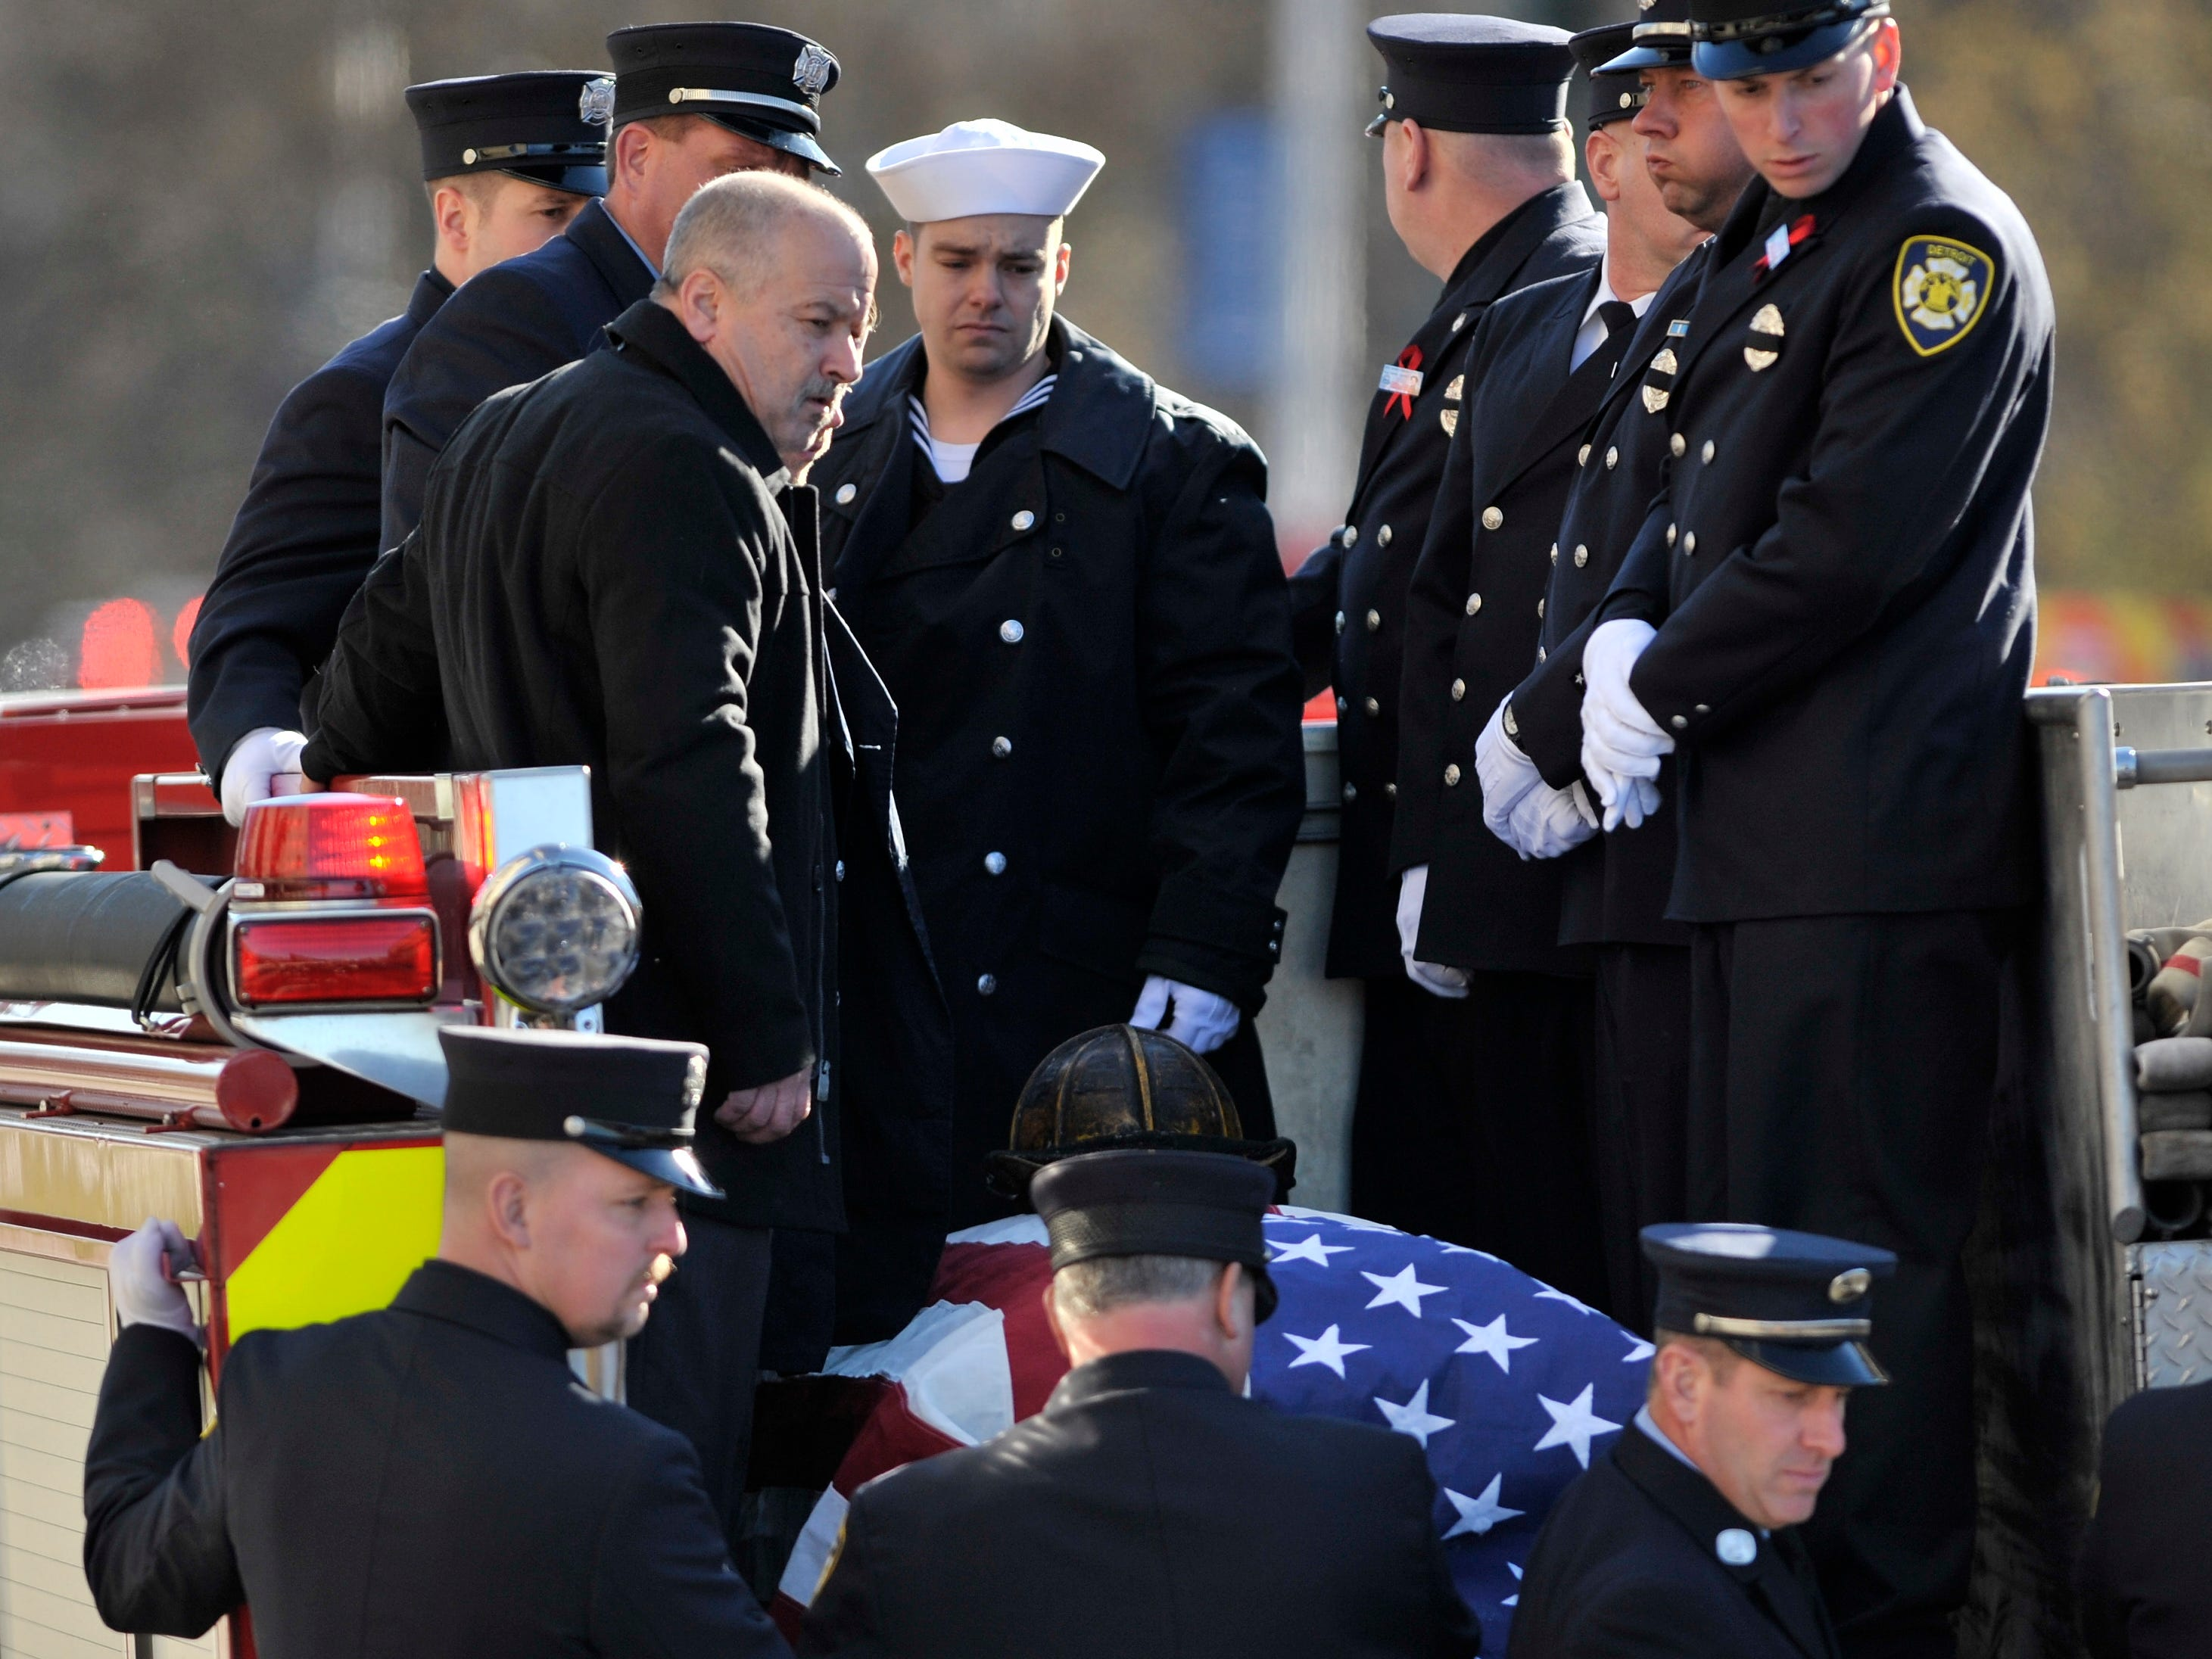 Pall bearers and others encircle the casket of fallen Detroit firefighter Michael Lubig before proceeding to the cemetery.